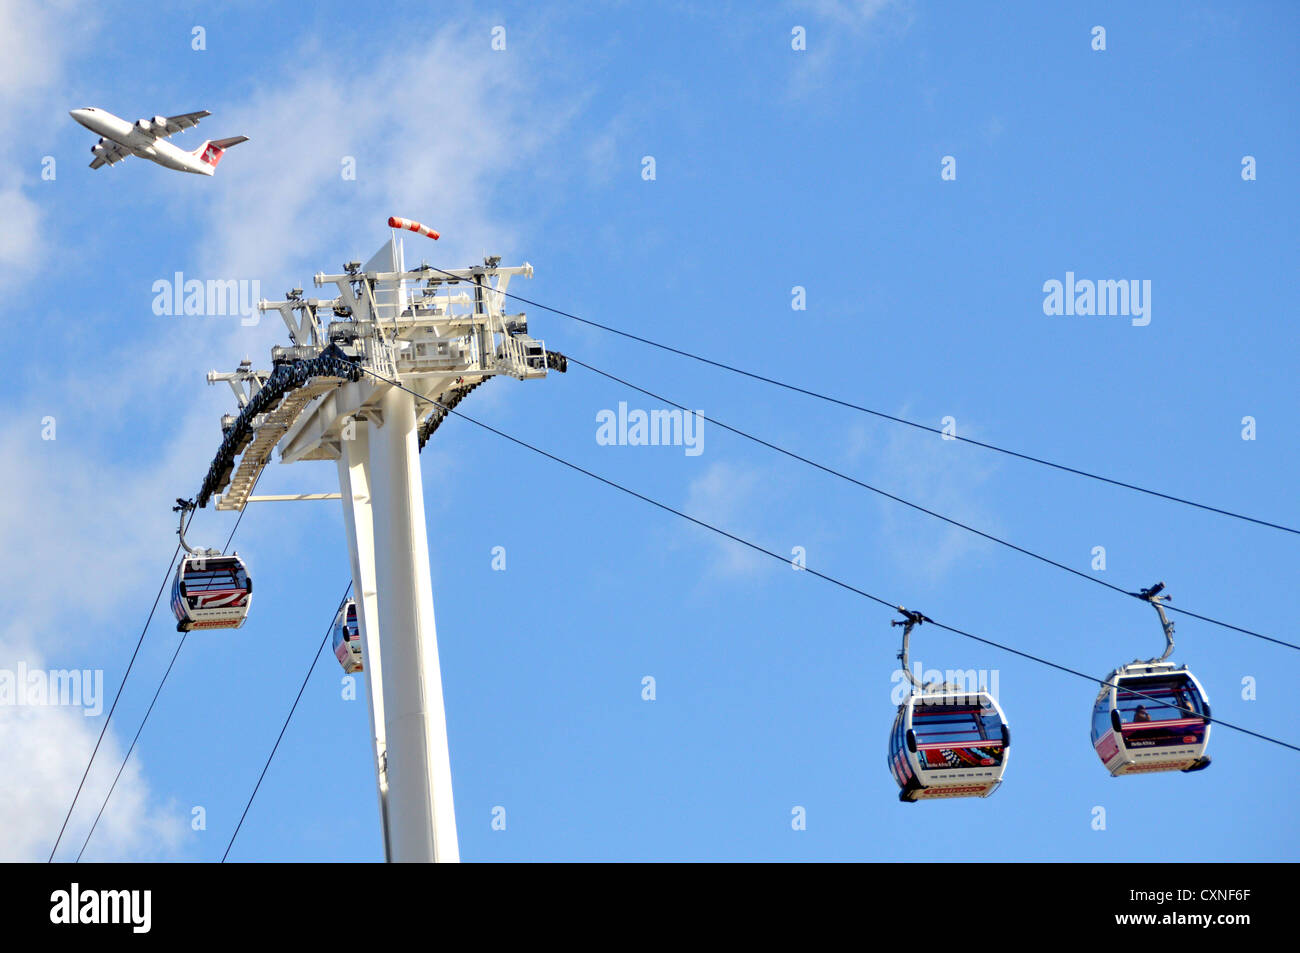 Swiss International Air Lines passenger jet on take off from London City Airport flying above top of cable cars Stock Photo